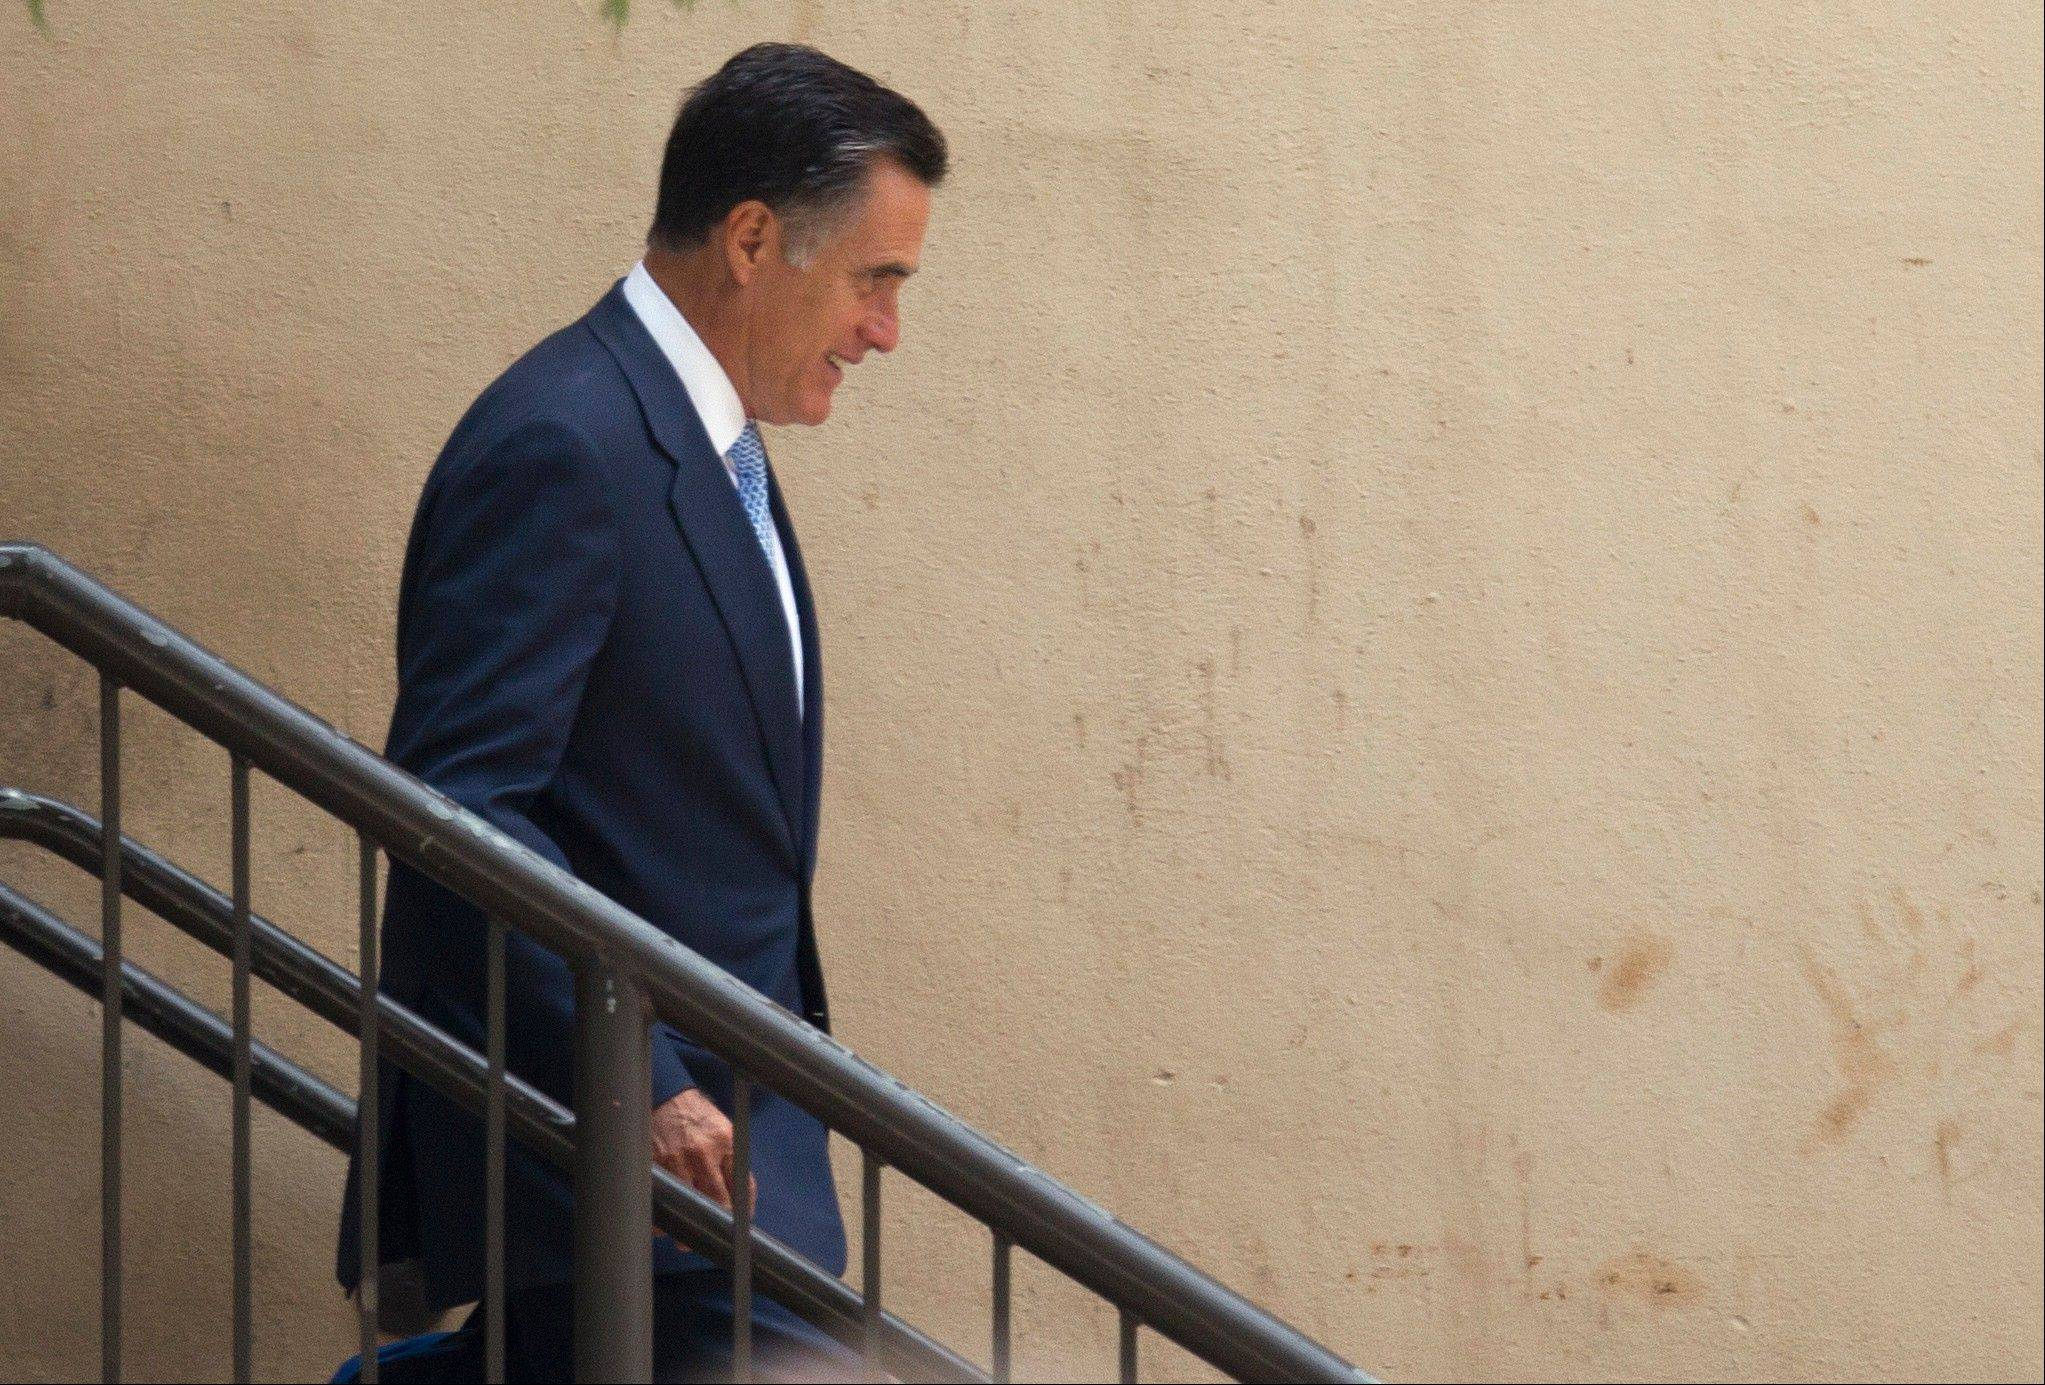 Republican presidential candidate, former Massachusetts Gov. Mitt Romney leaves a fundraiser that included Gov. Bobby Jindal, R-La., on Monday, July 16, 2012 in Baton Rouge, La.